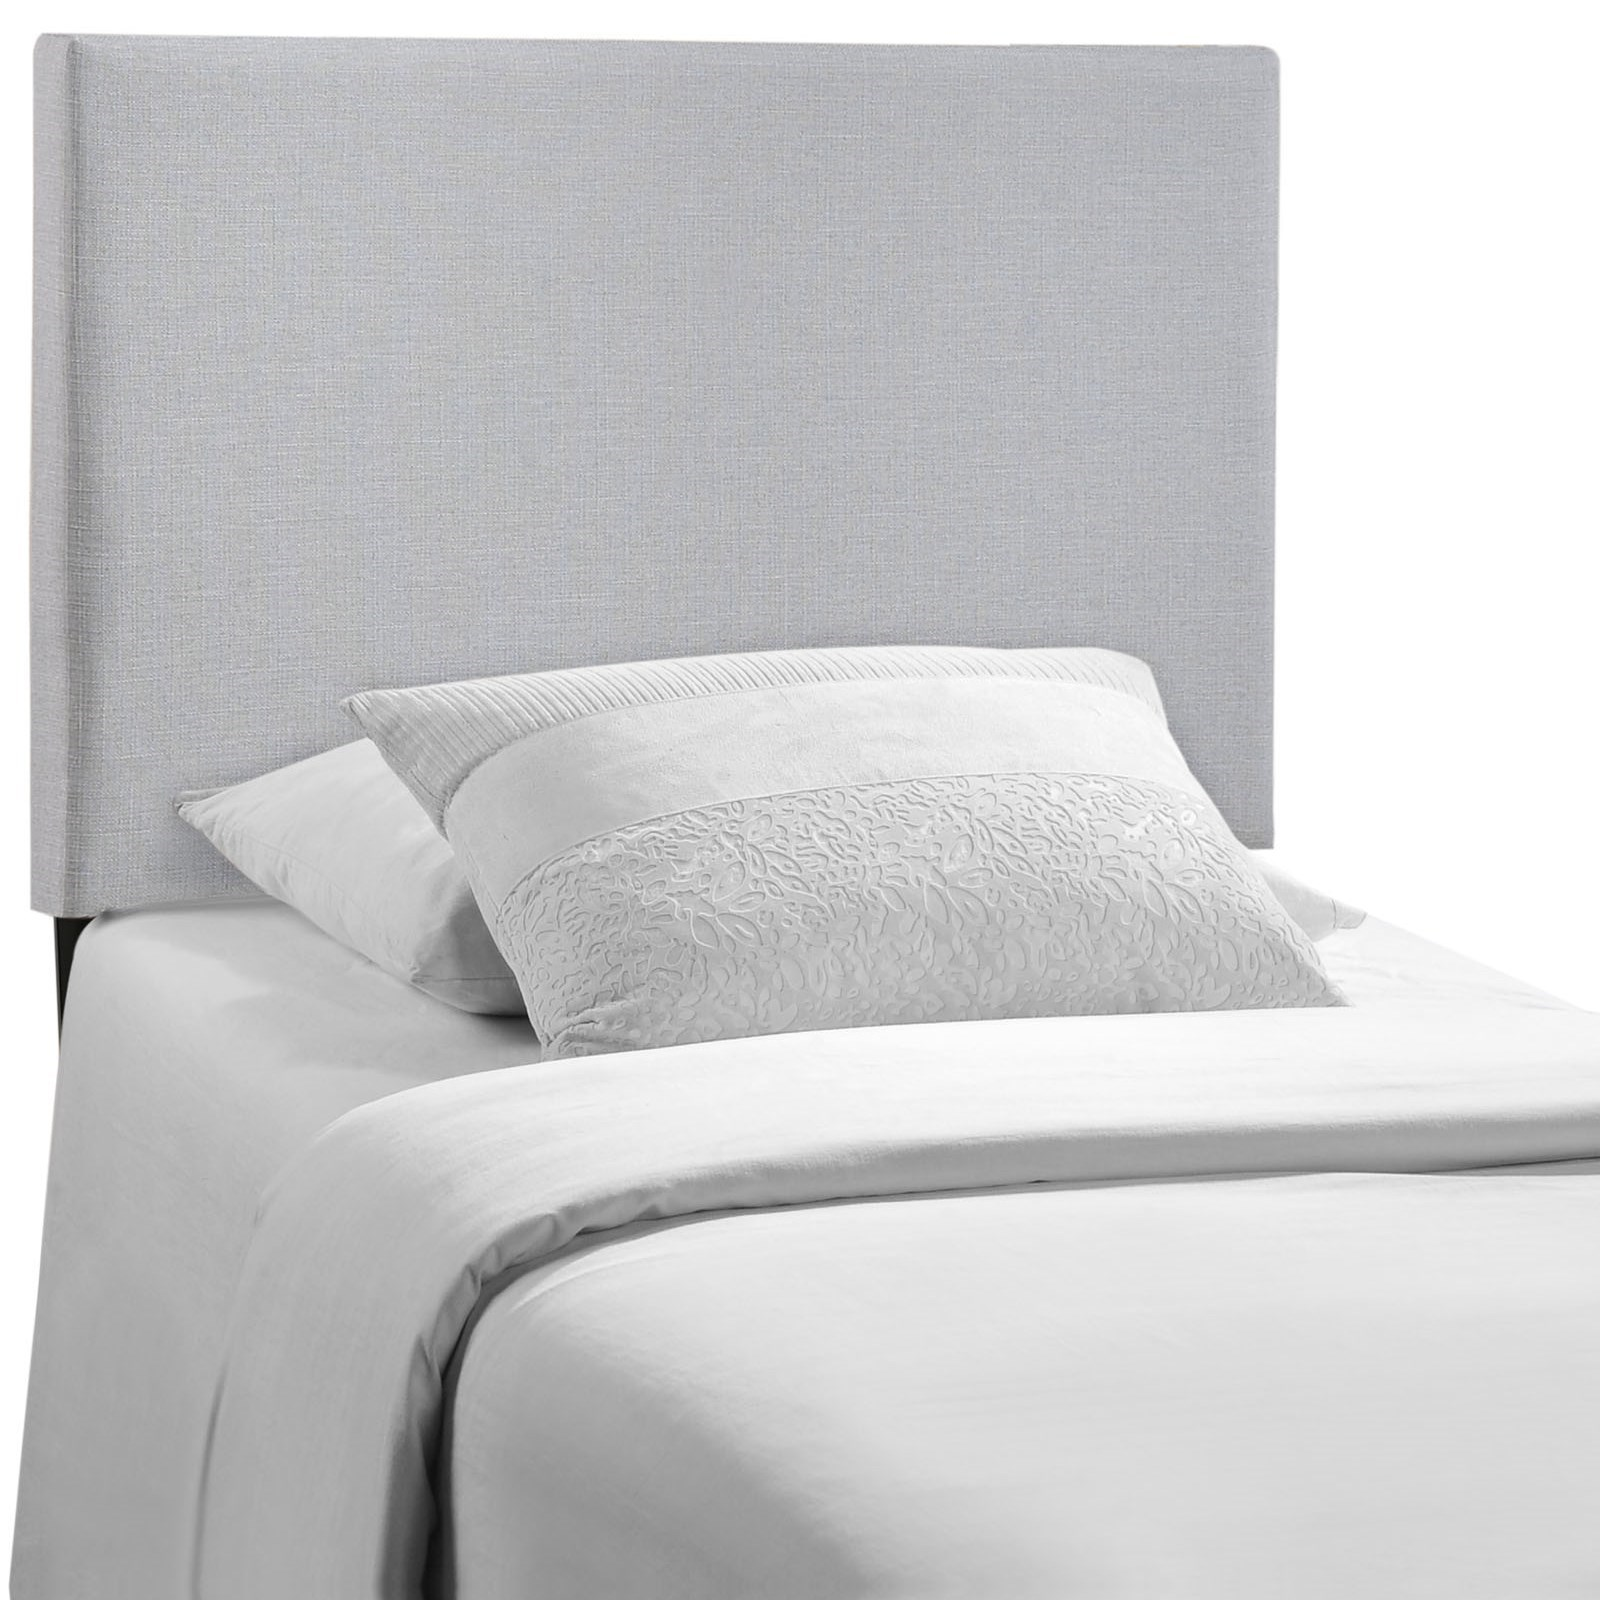 Region Twin Upholstered Headboard by Modway at Value City Furniture